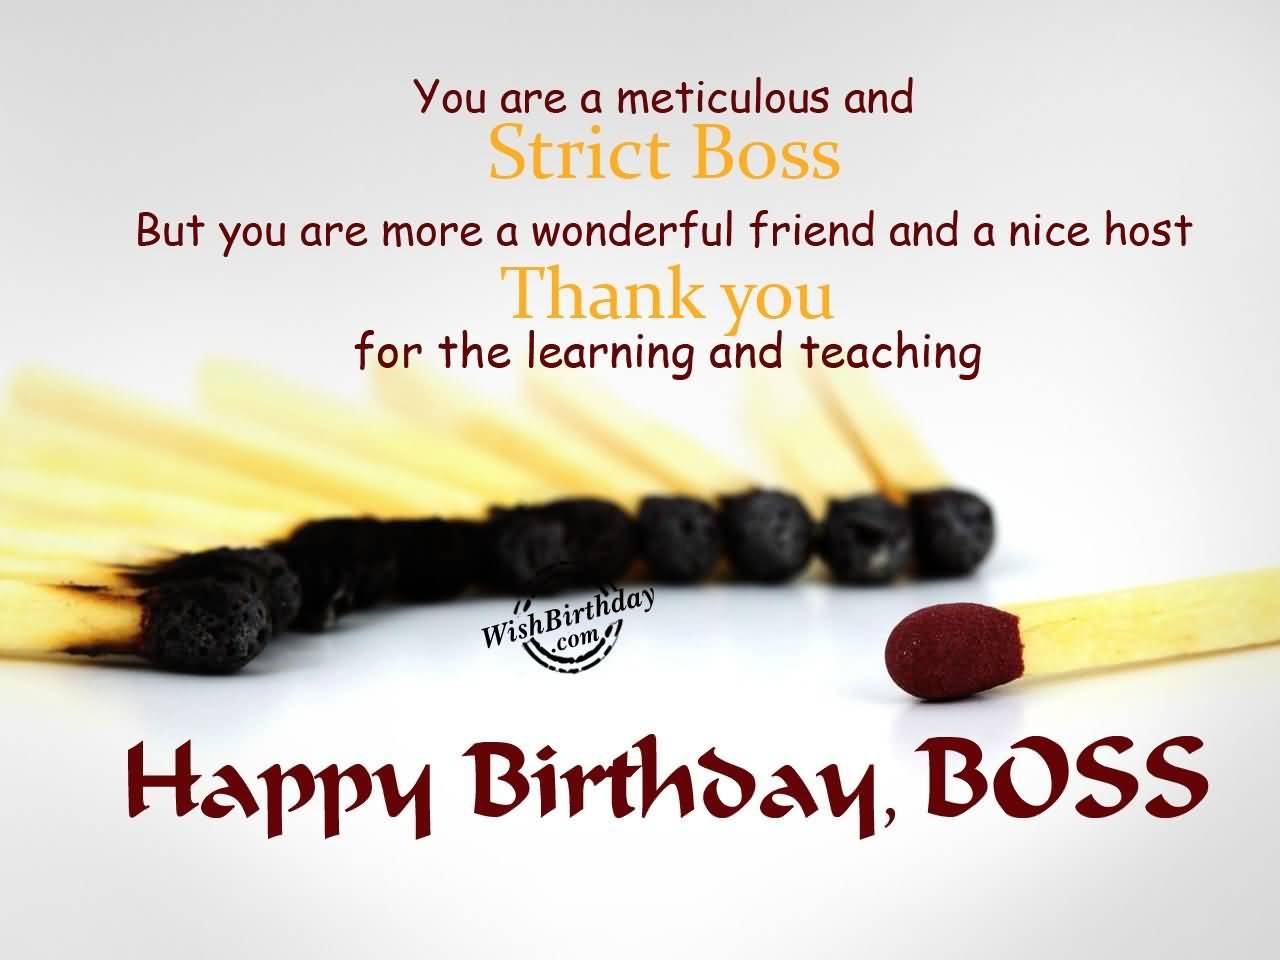 You are a meticulous and strict boss thanks you happy birthday boss you are a meticulos and strict boss thanks you happy birthday boss m4hsunfo